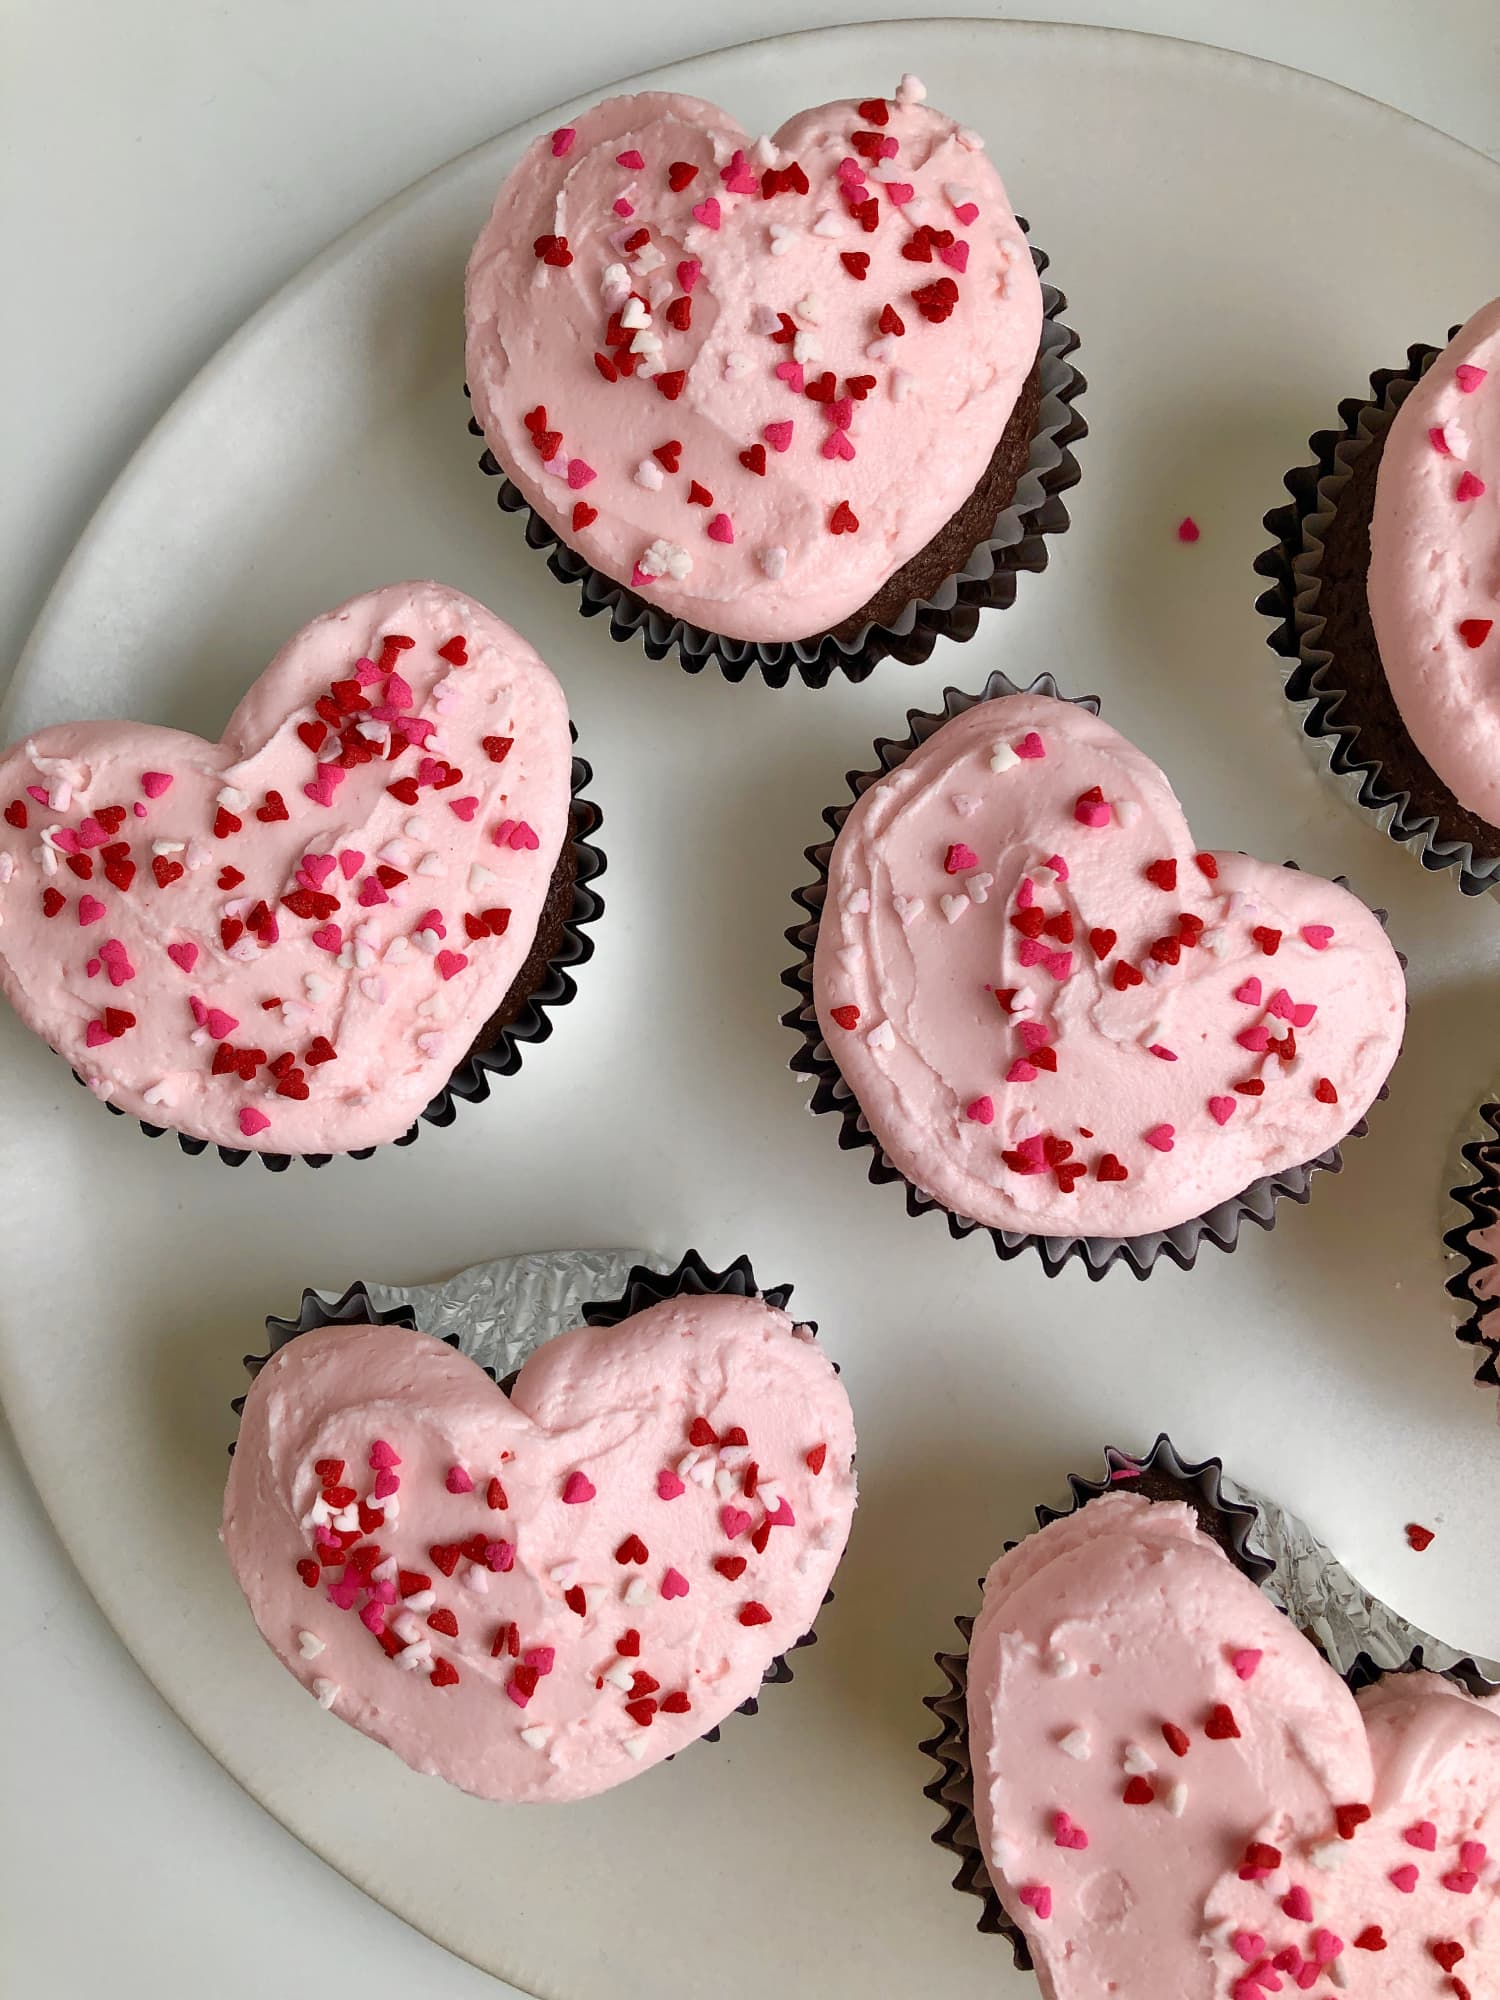 This Trick for Making Heart-Shaped Cupcakes Without a Special Pan Is Ingenious